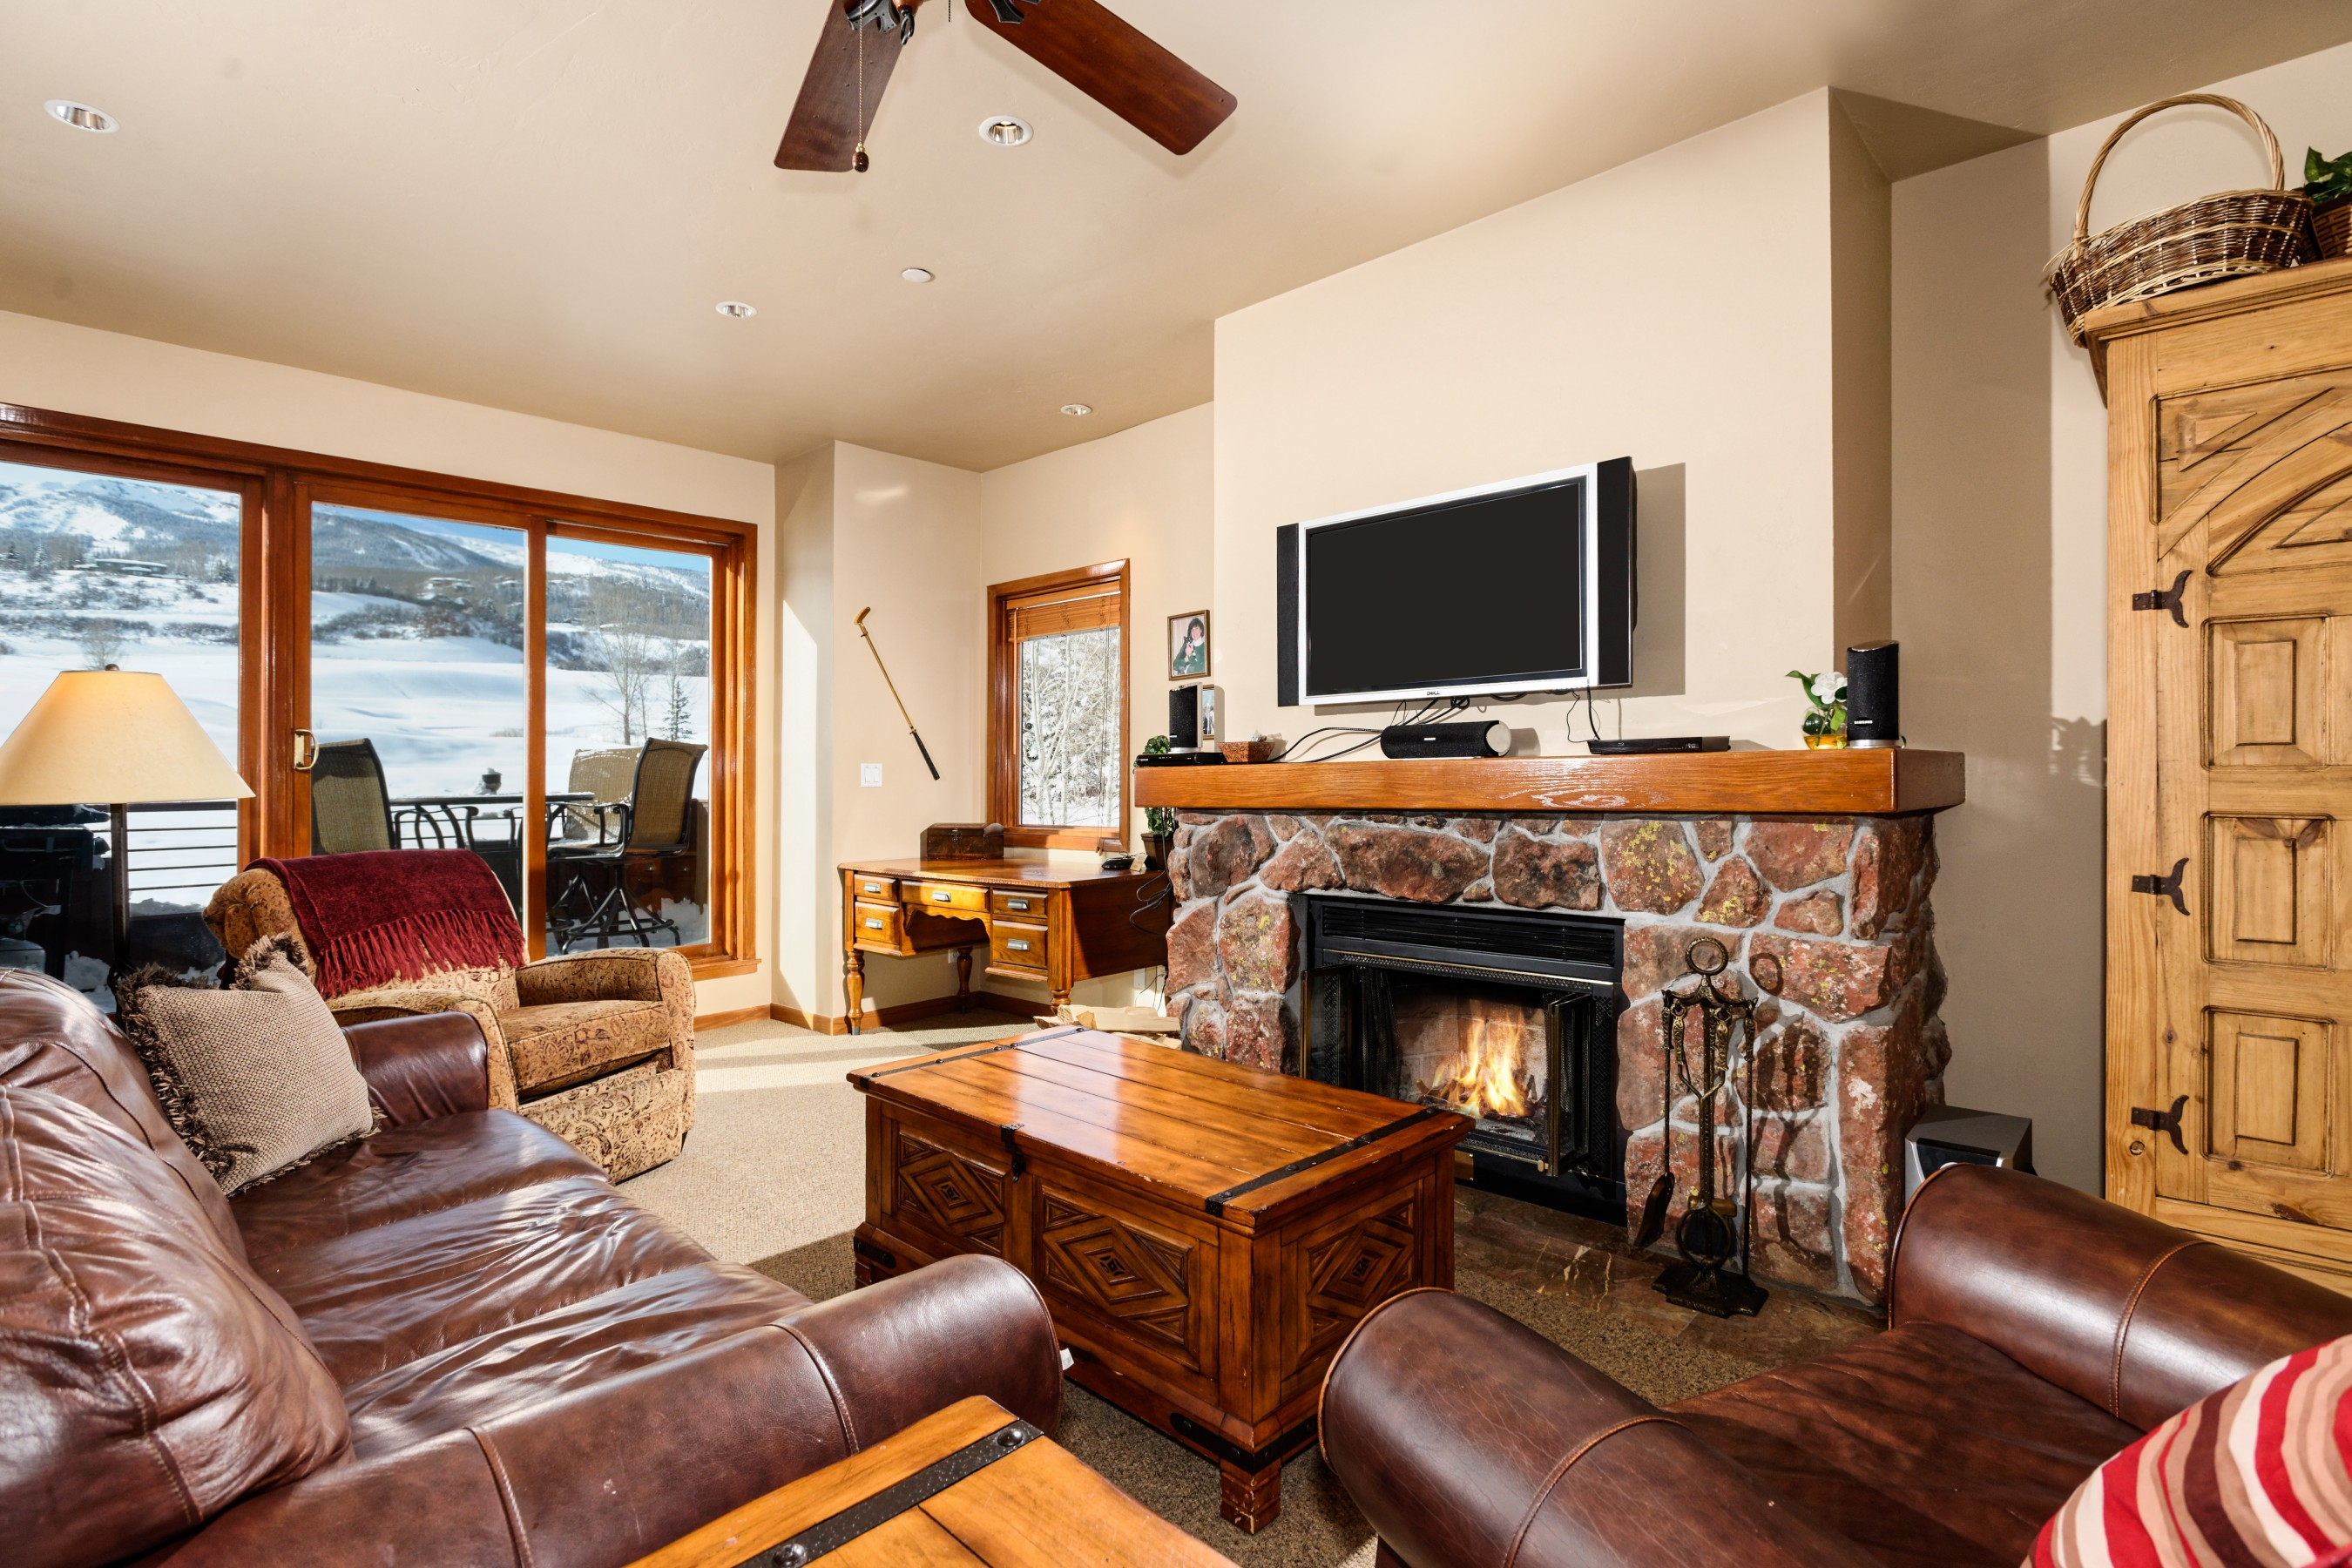 Single Family Home for Sale at Club Villas, Phase III, Unit: 1523 150 Snowmass Club Circle Unit #1523 Snowmass Village, Colorado, 81615 United States